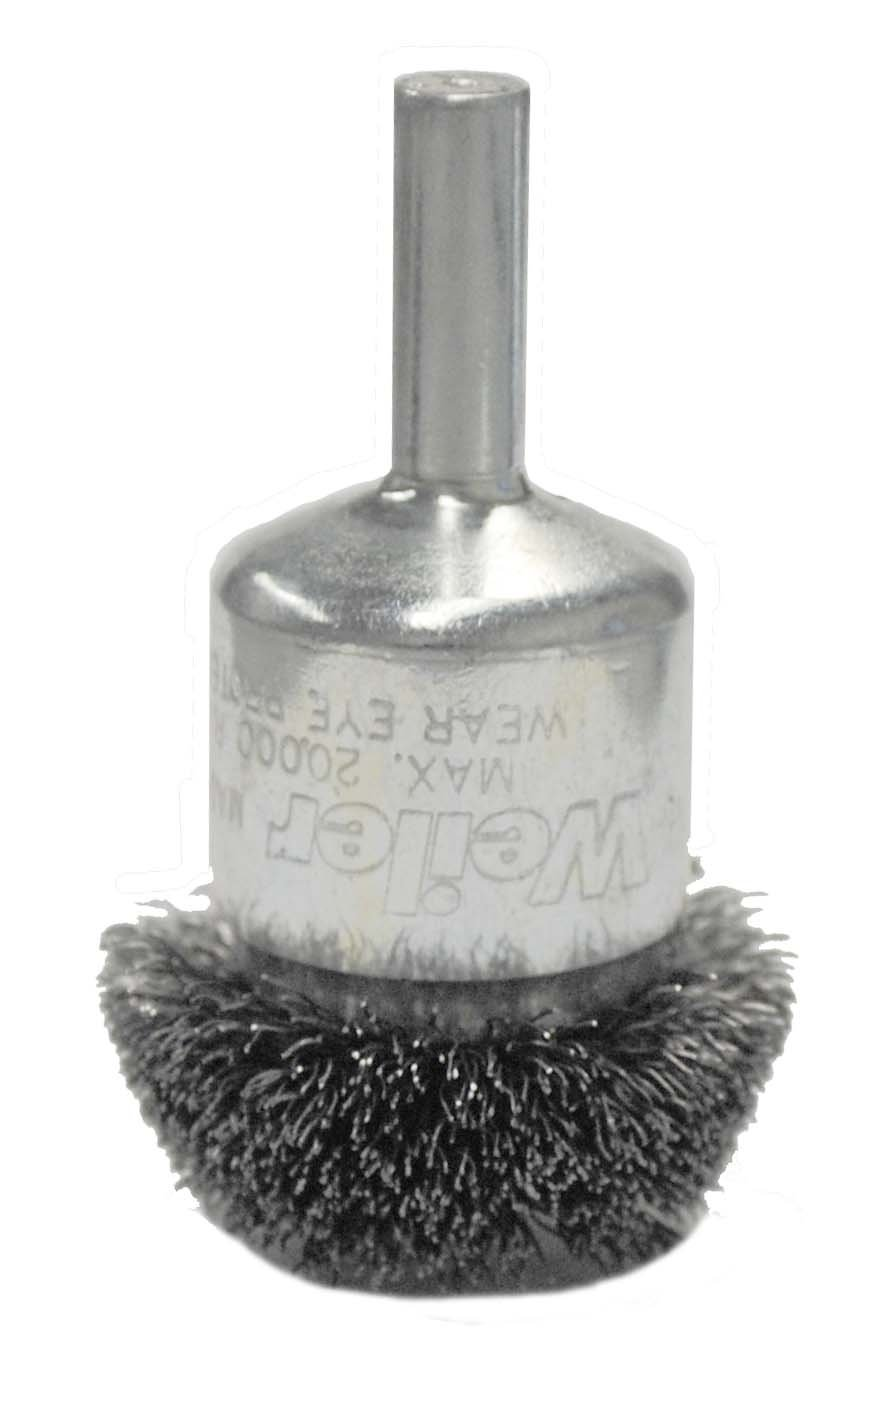 Weiler 10047 Circular Flared Crimped Wire End Brush, 1-1/2'', 0.20'' Stainless Steel Fill by Weiler (Image #1)